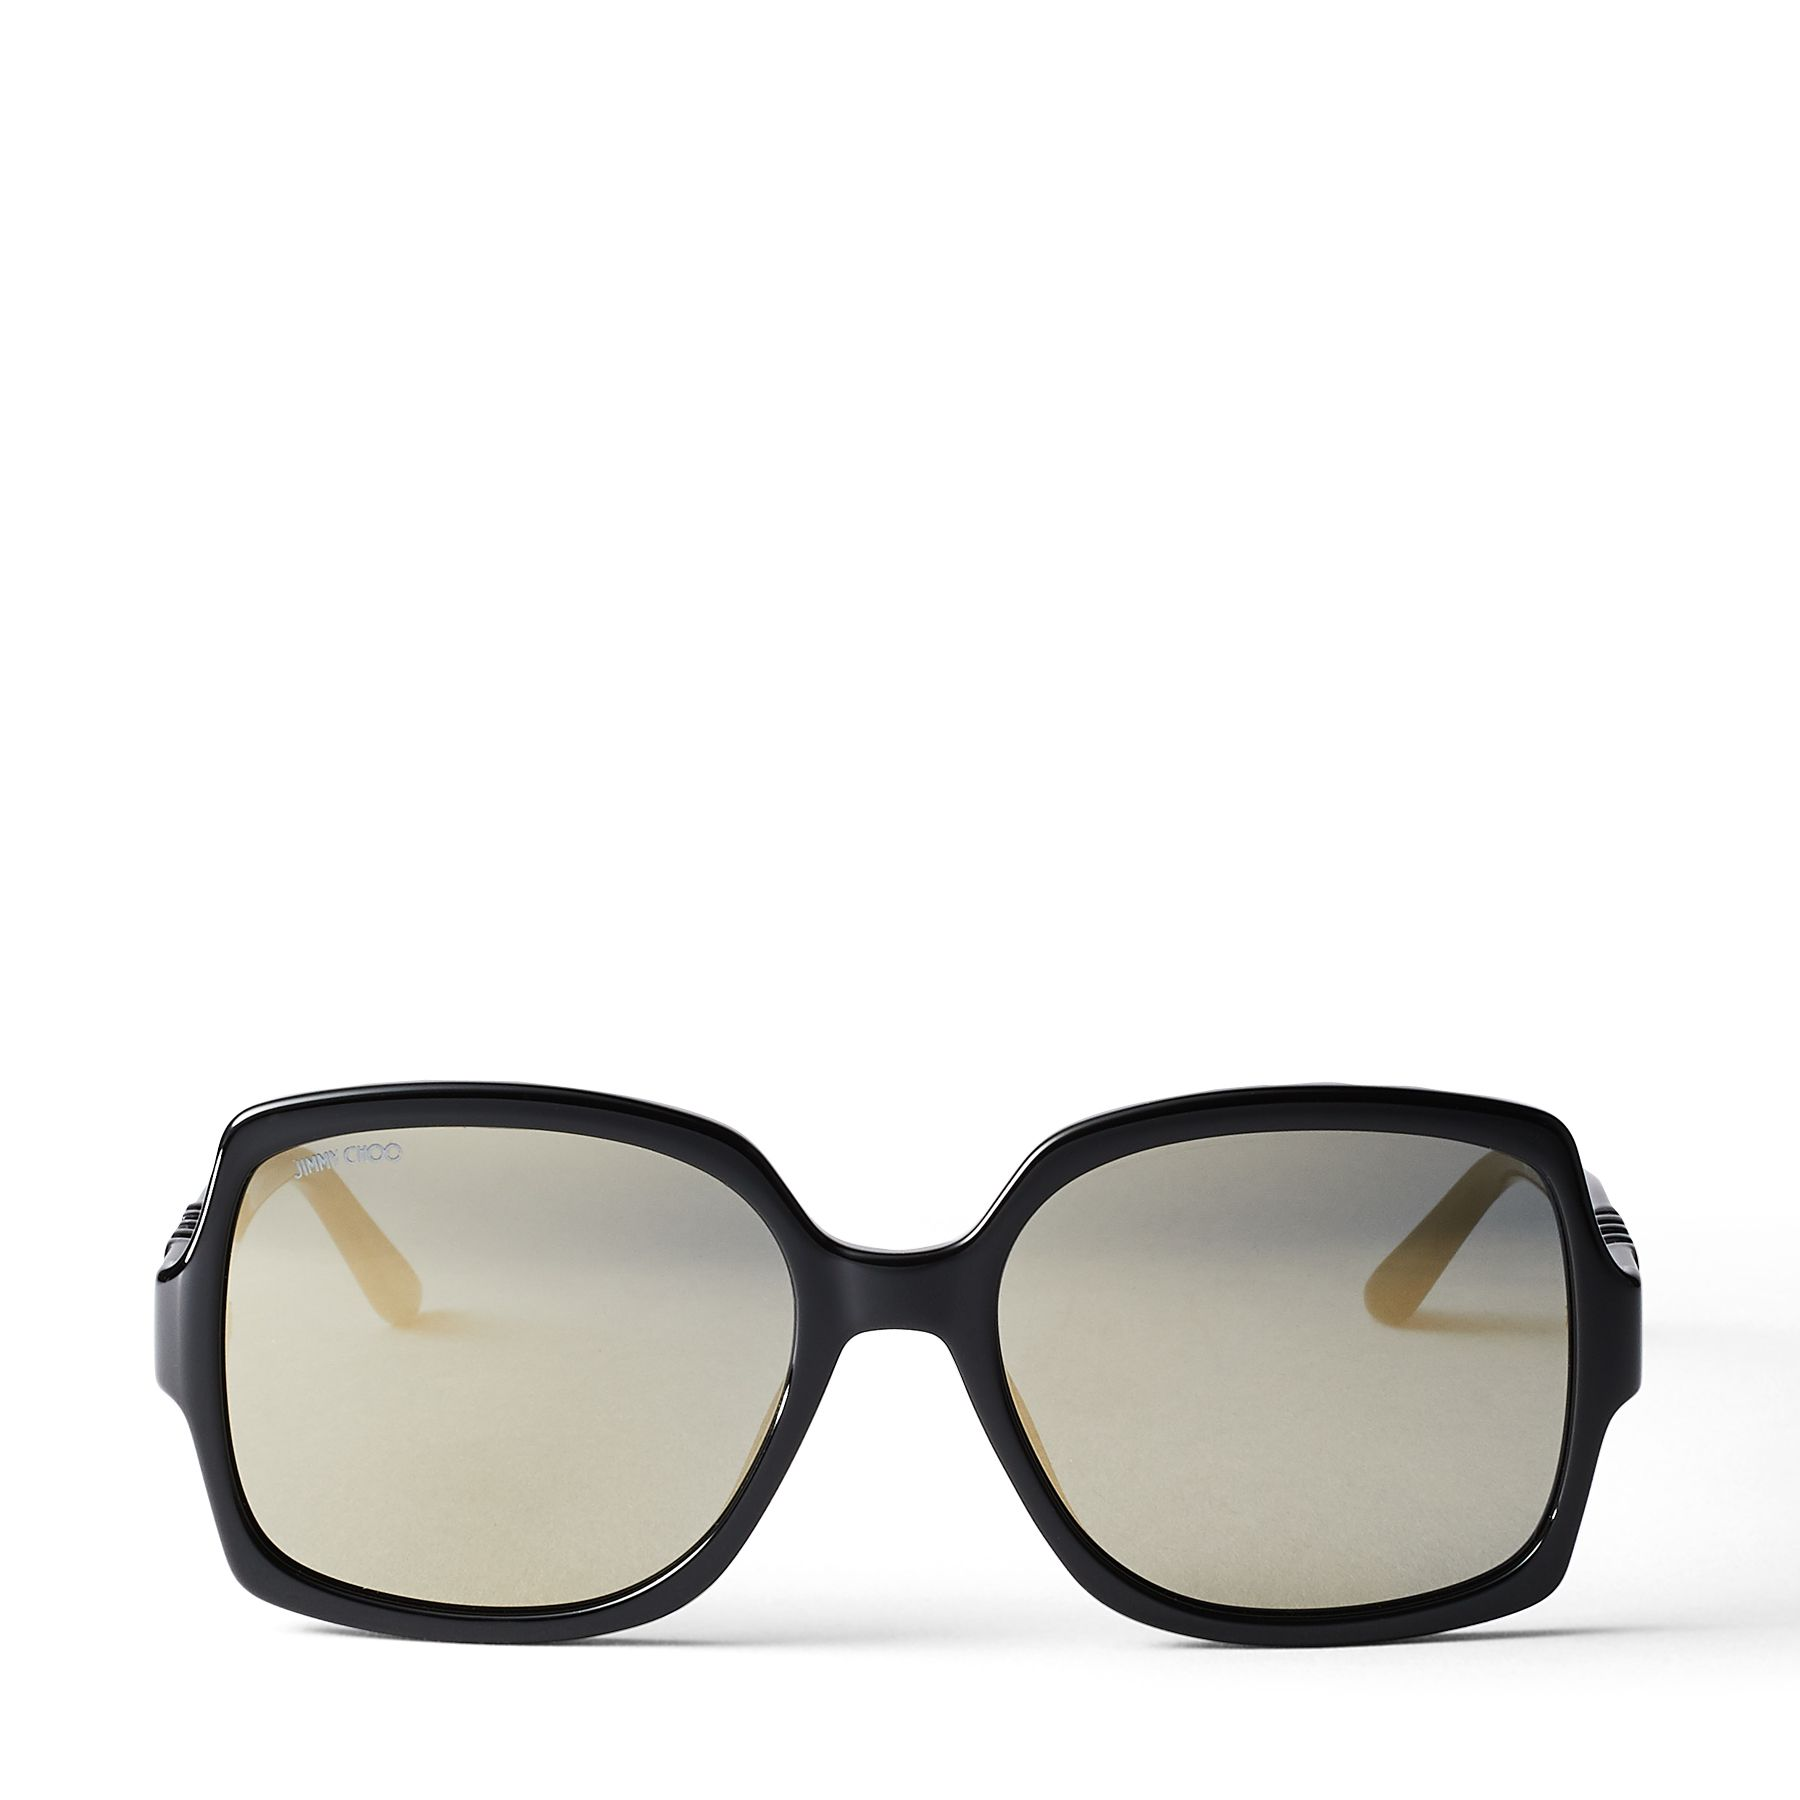 Our statement SAMMI sunglasses are instantly recognisable. Made in Italy, this oversized, square-eye pair features grey shaded lenses with super bronze mirror effect. They are finished with our CHOO glittered gold insert on the side. A perfect example of understated excellence, while adding a touch of sparkle to your everyday.